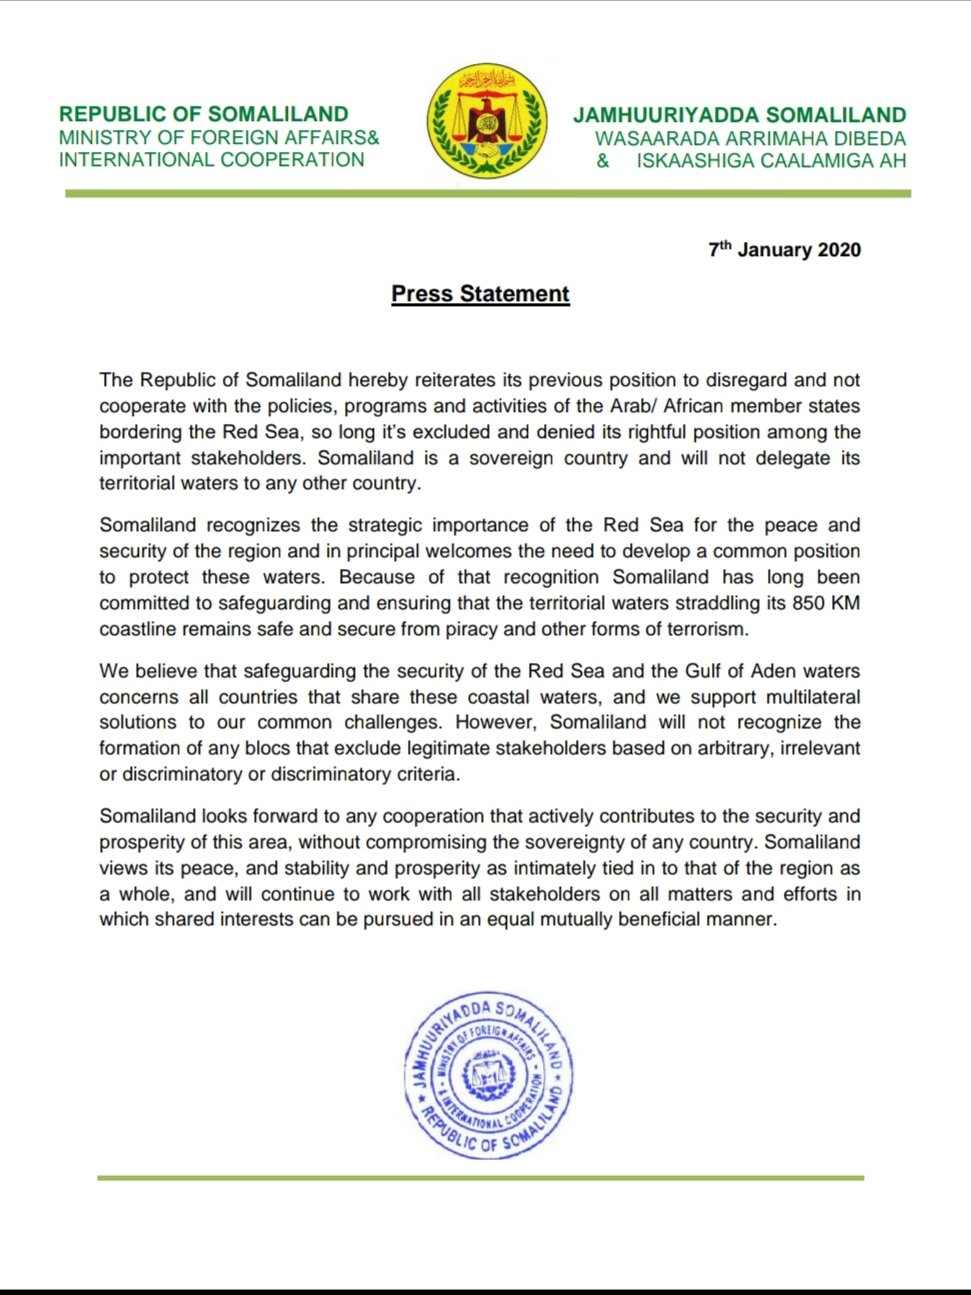 Somaliland dismisses The establishment of Red Sea, Gulf of Aden council